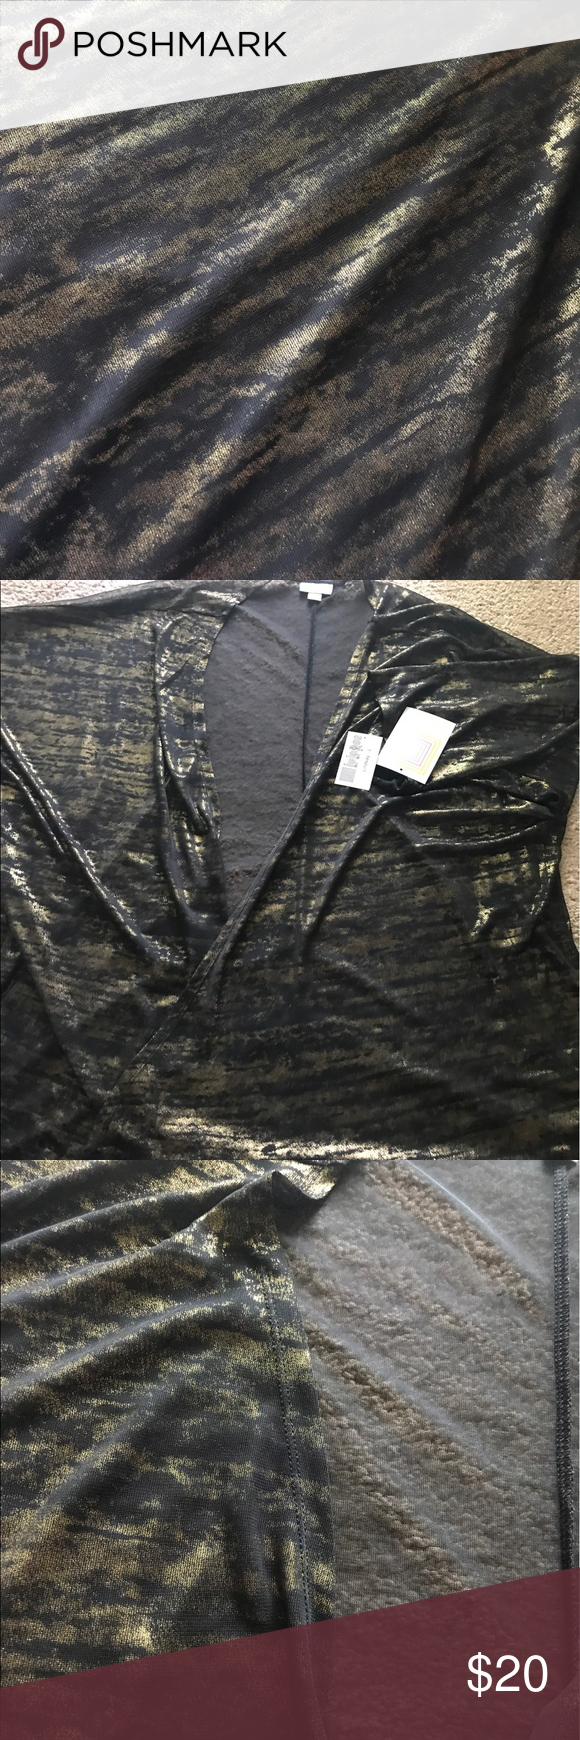 Gold foil Elegant 2016 Lindsay Kimono Size large NWT Lindsay from this holidays seasons Elegant Collection.  It is a sheer black Kimono with shiny gold foil running across it. The pattern runs more horizontal and kind of looks like tiger stripes (but isn't).  I usually wear a 1x in LLR and sized down for this. I never wore it! LuLaRoe Other